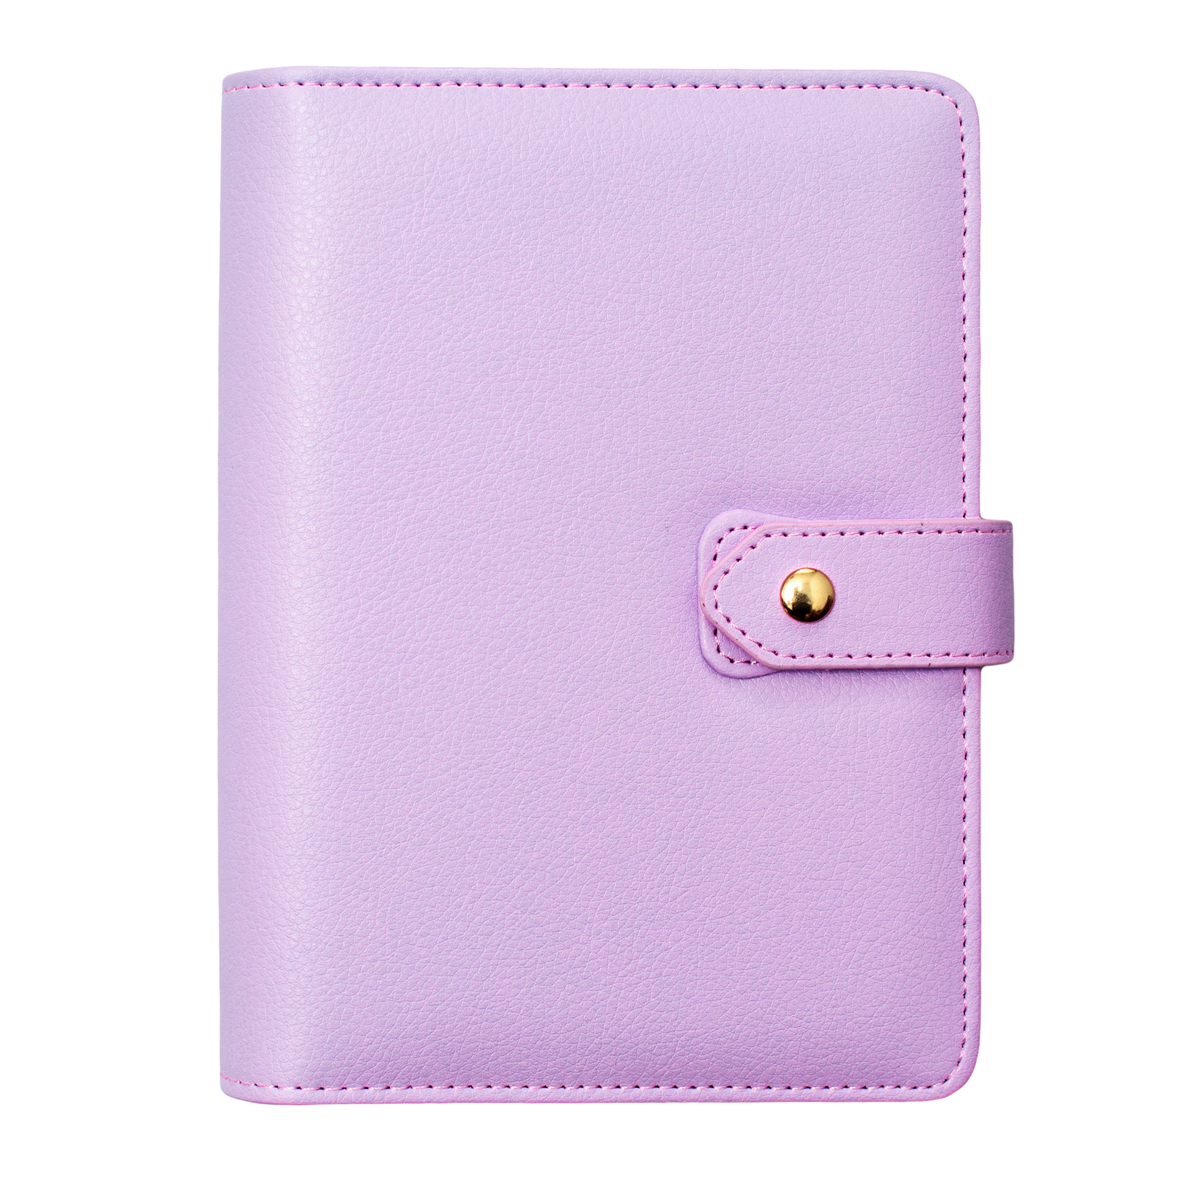 [Minor Flaw] DOKIBOOK LILAC WITH SNAP BUTTON LARGE